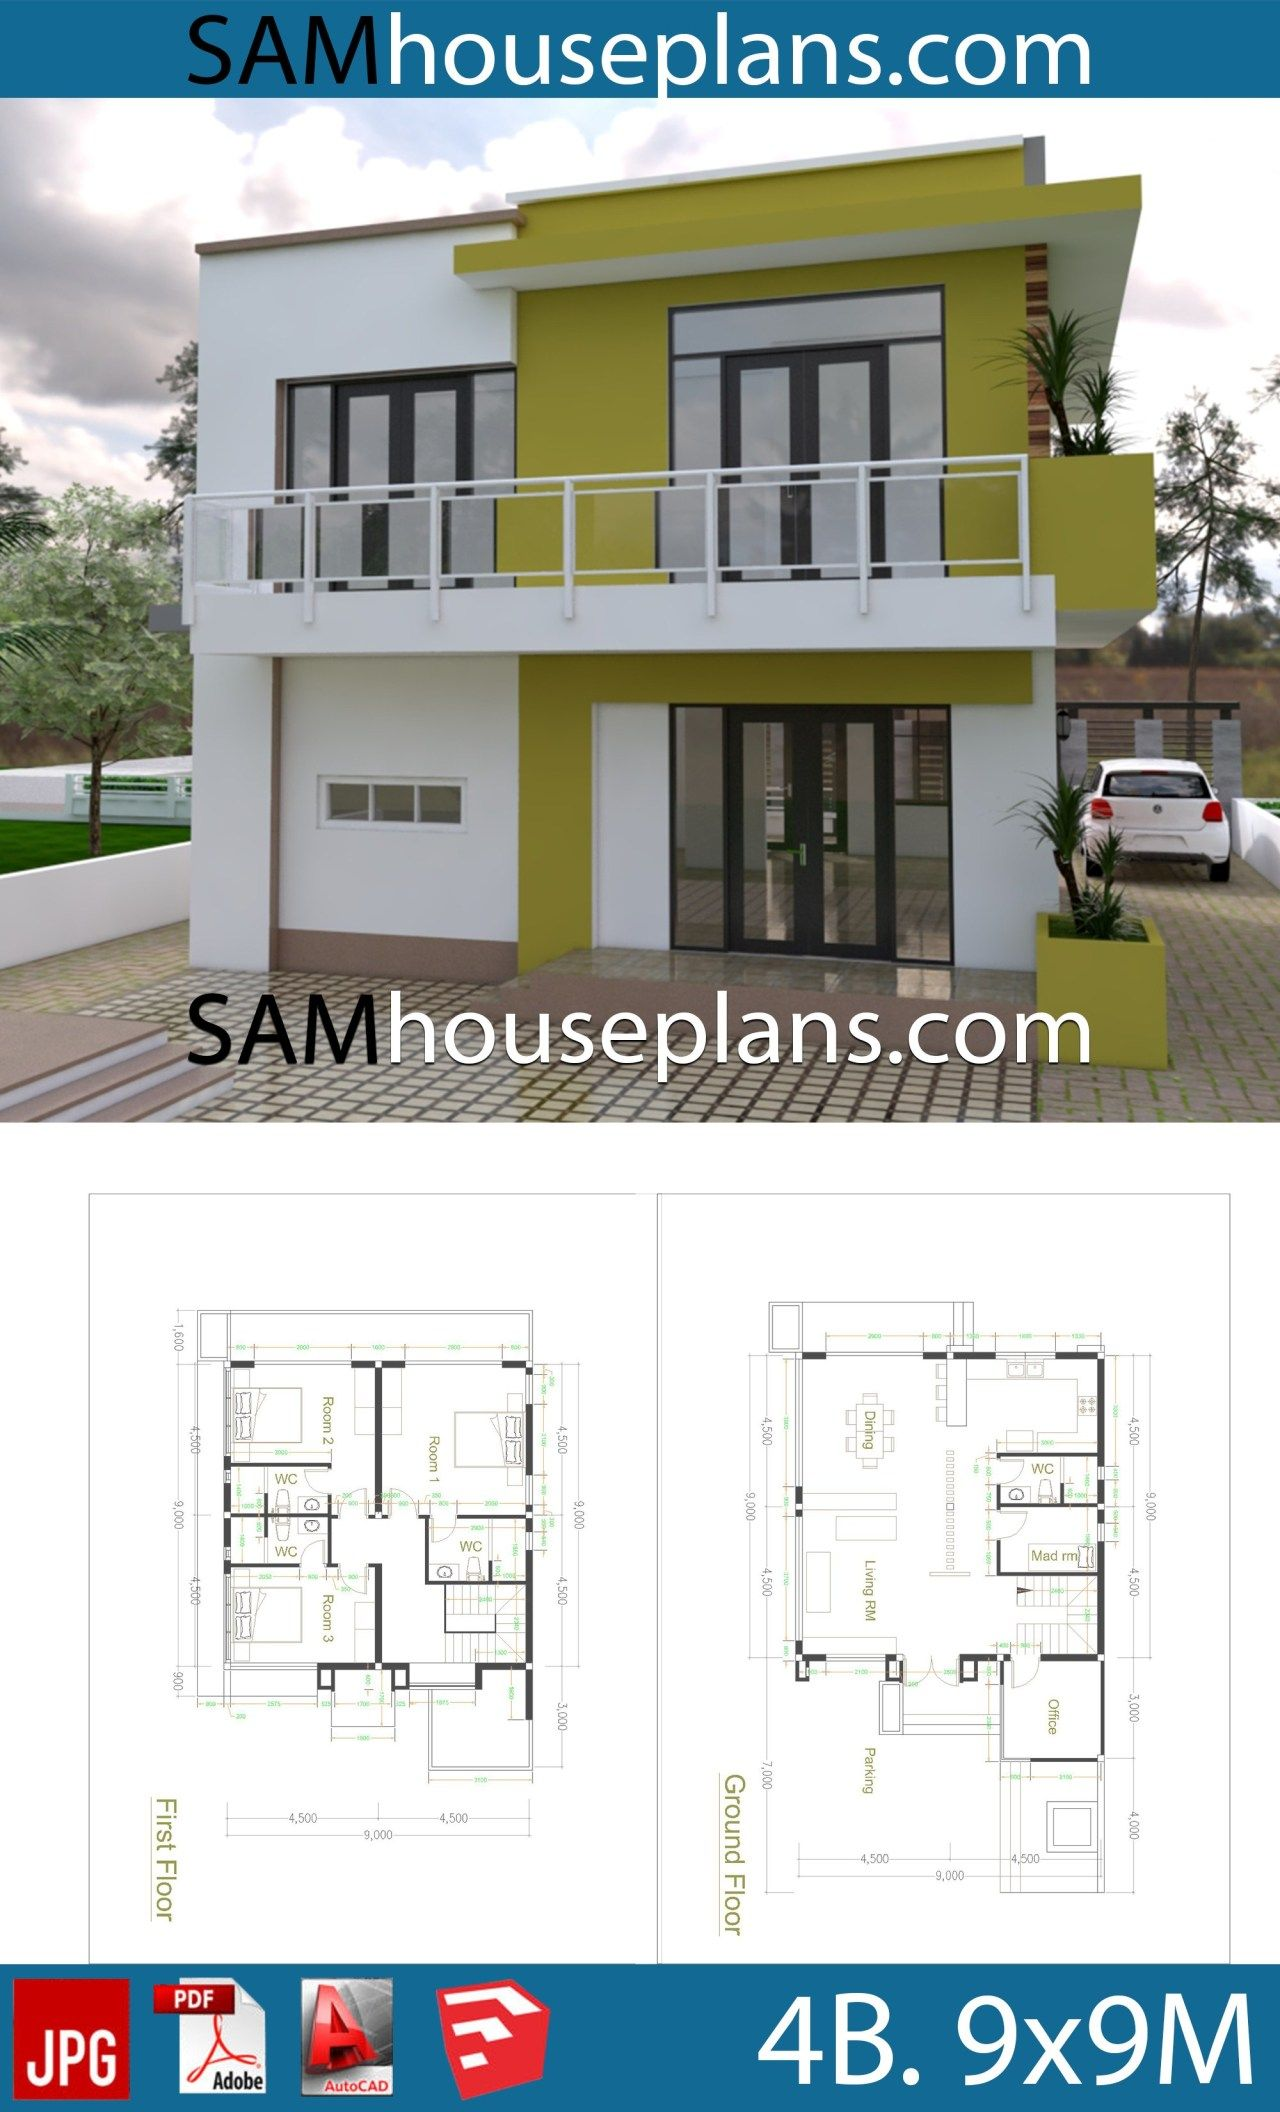 9x9 Room Design: House Plans 9x9 With 4 Bedrooms